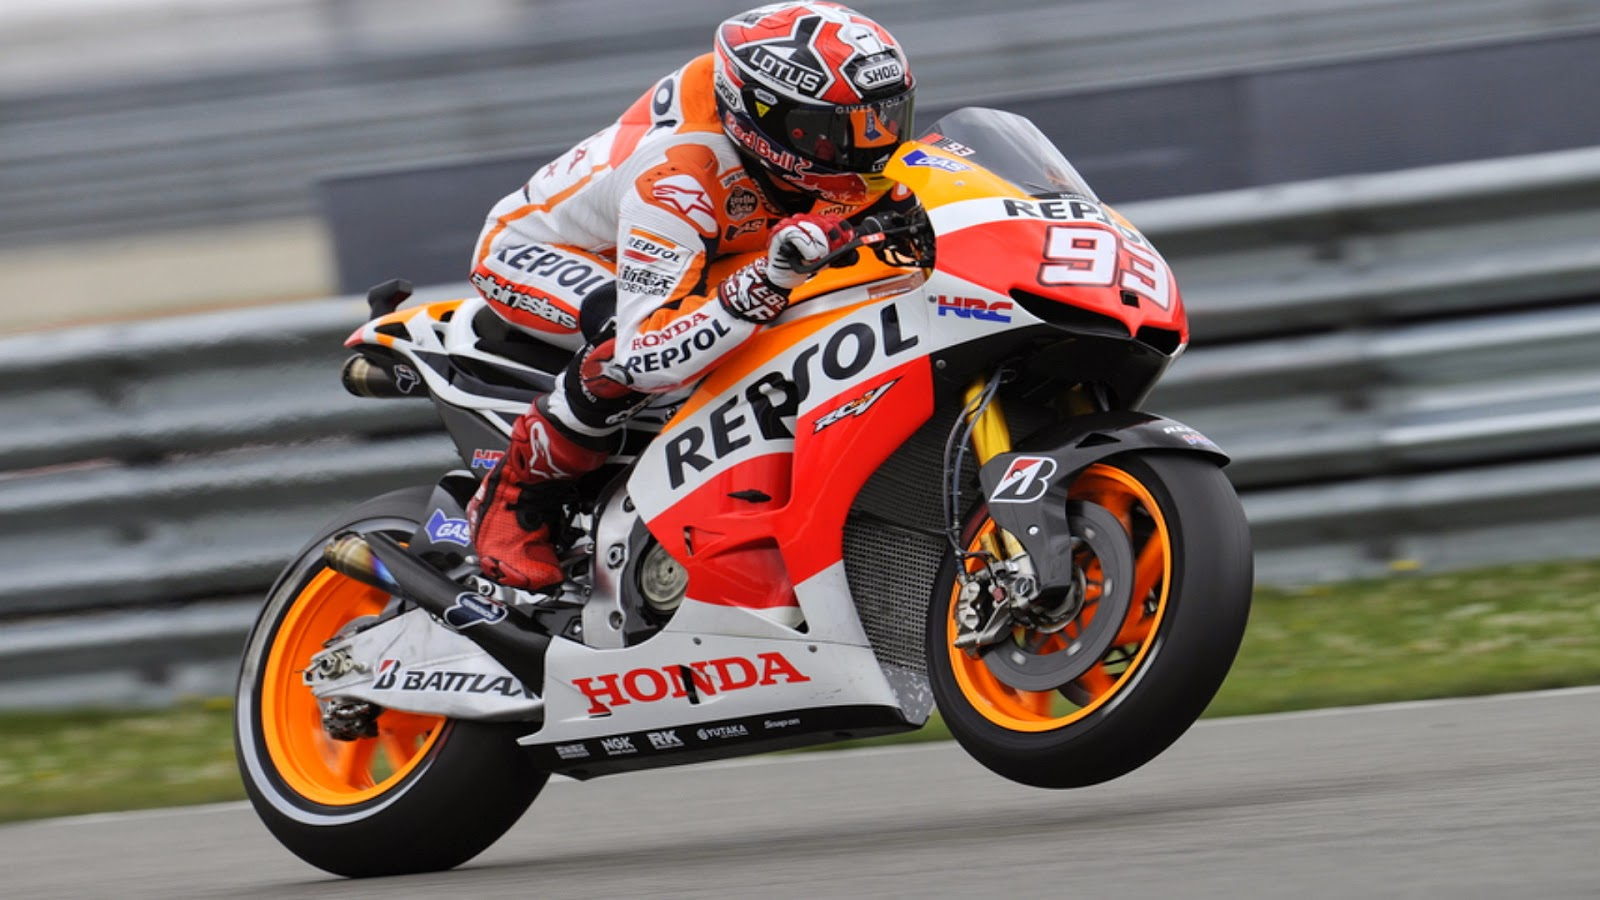 Marc Marquez HD Wallpaper 2014